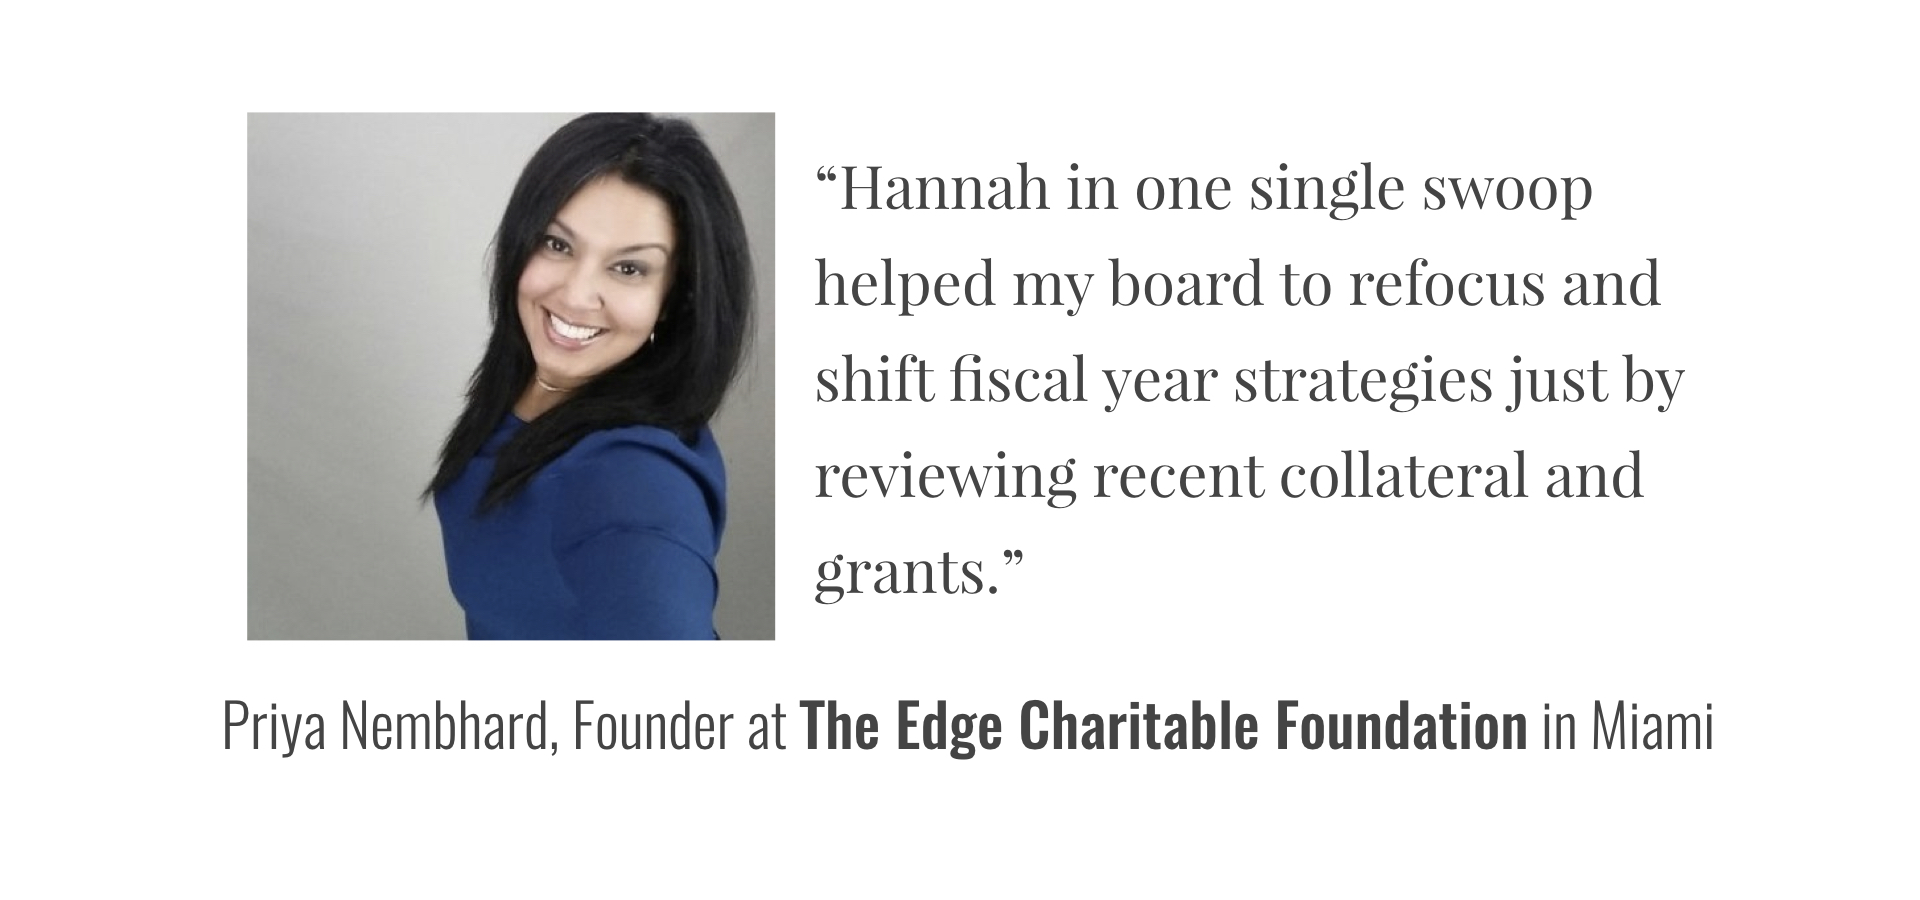 Copy of The Edge Charitable Foundation